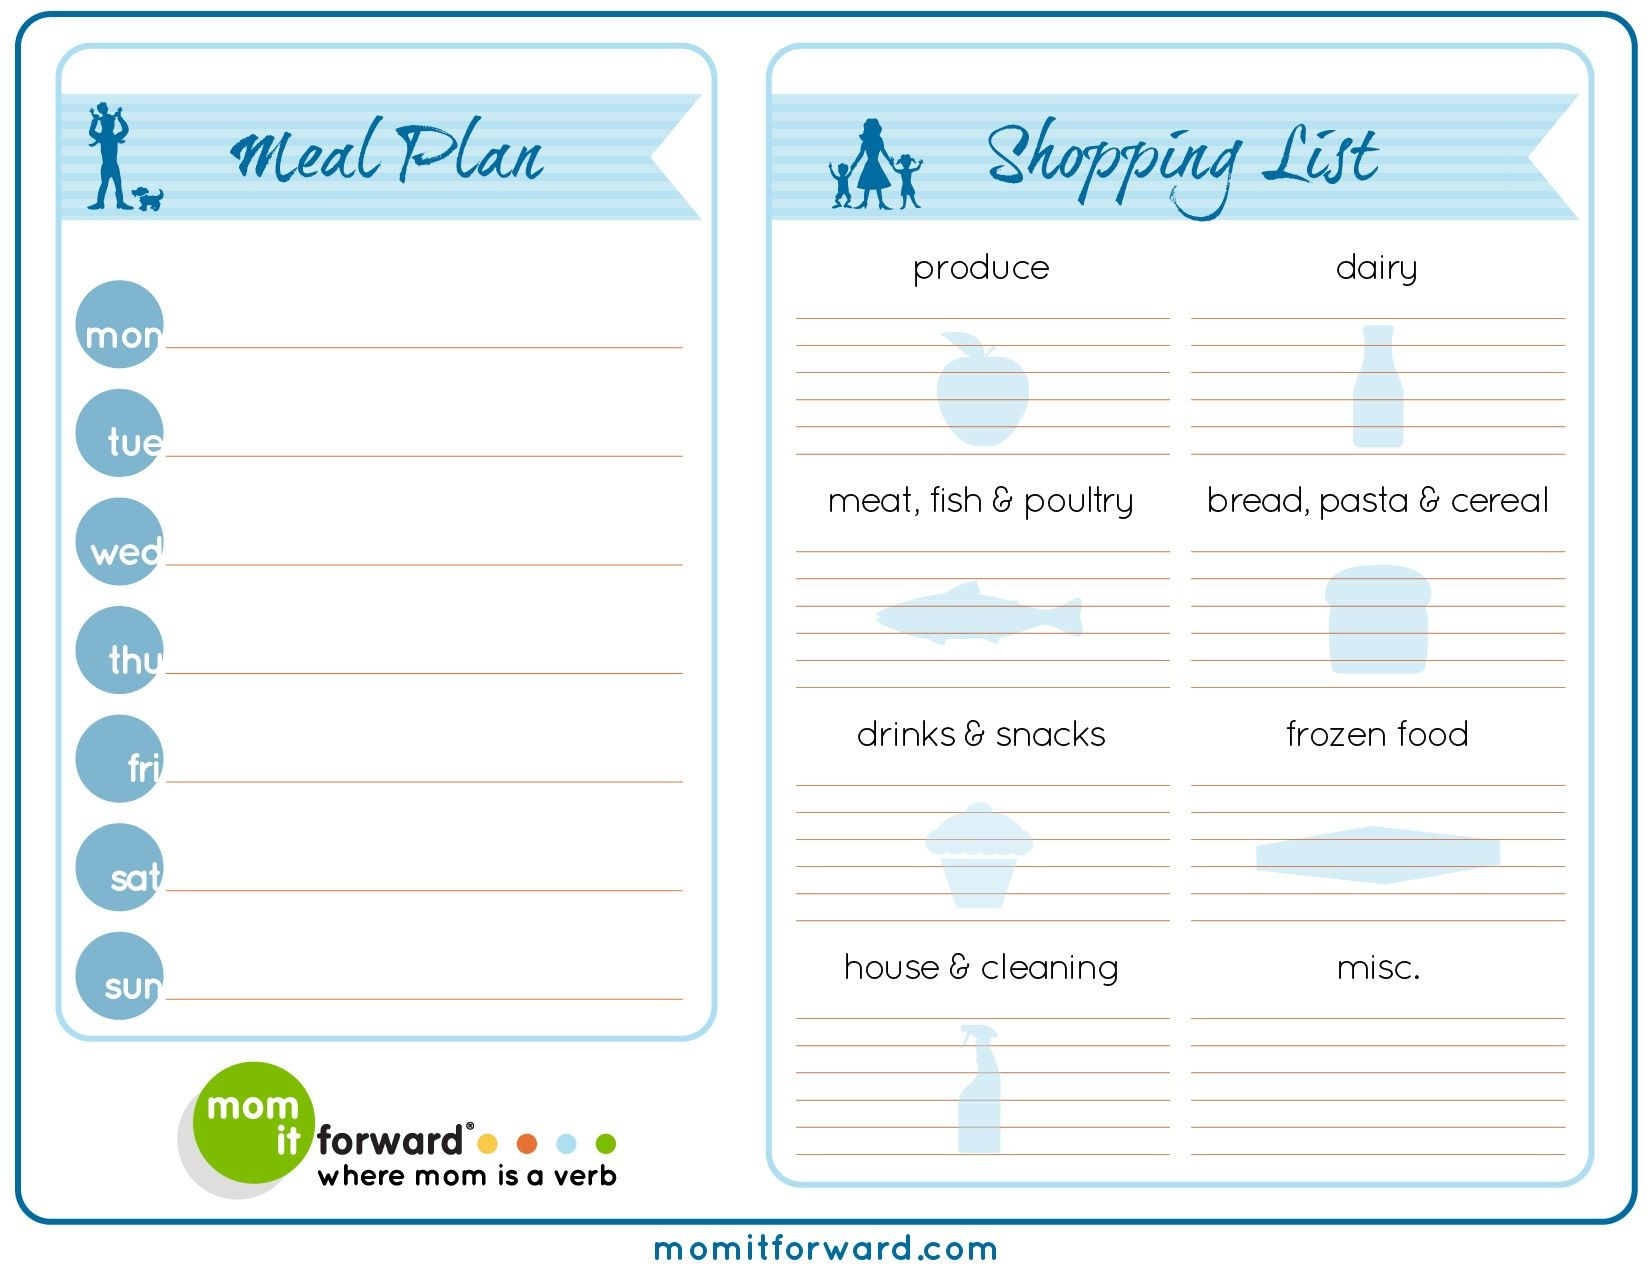 Meal Plan Worksheet How To Get People To Like Meal Plan